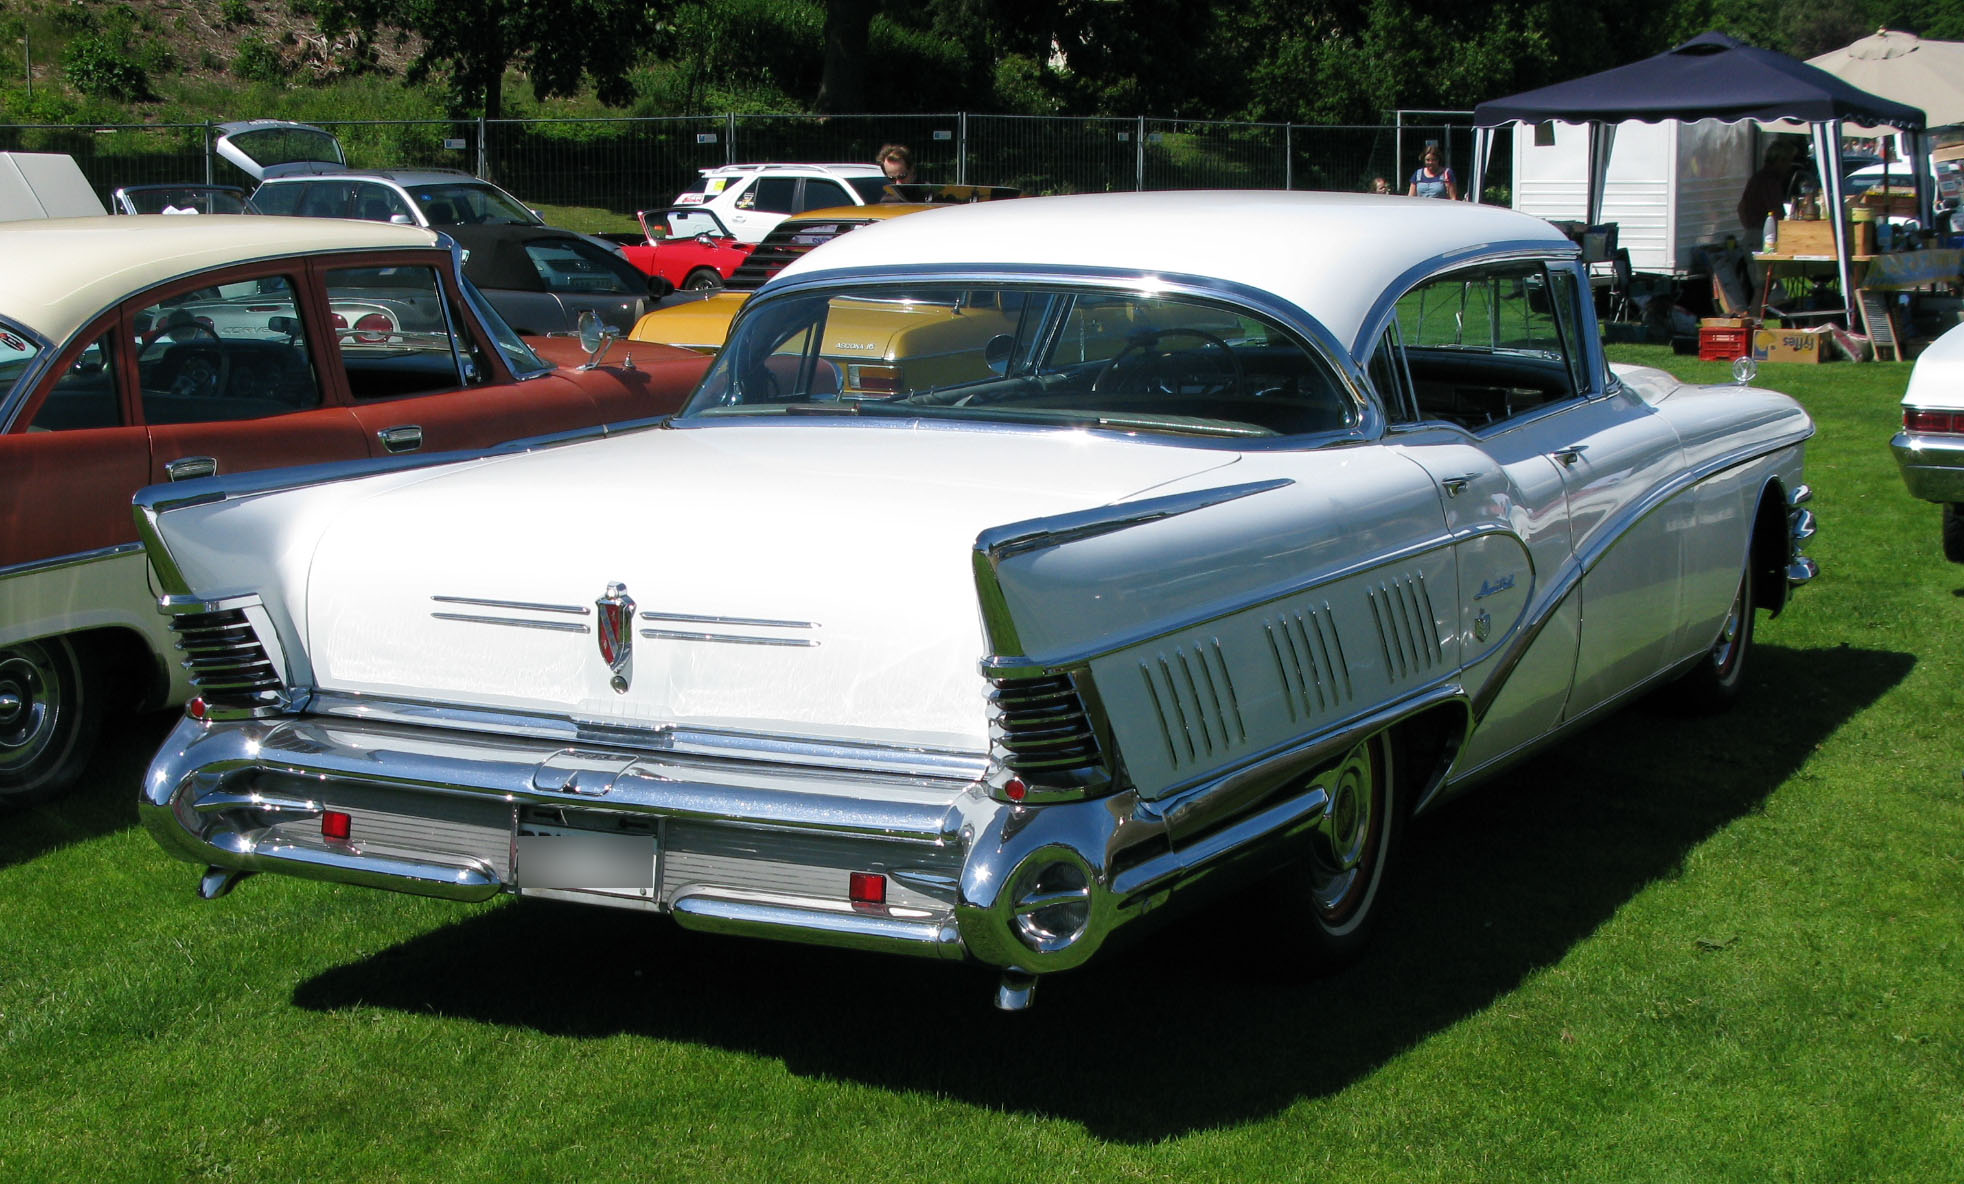 File:1958 Buick Limited.jpg - Wikimedia Commons